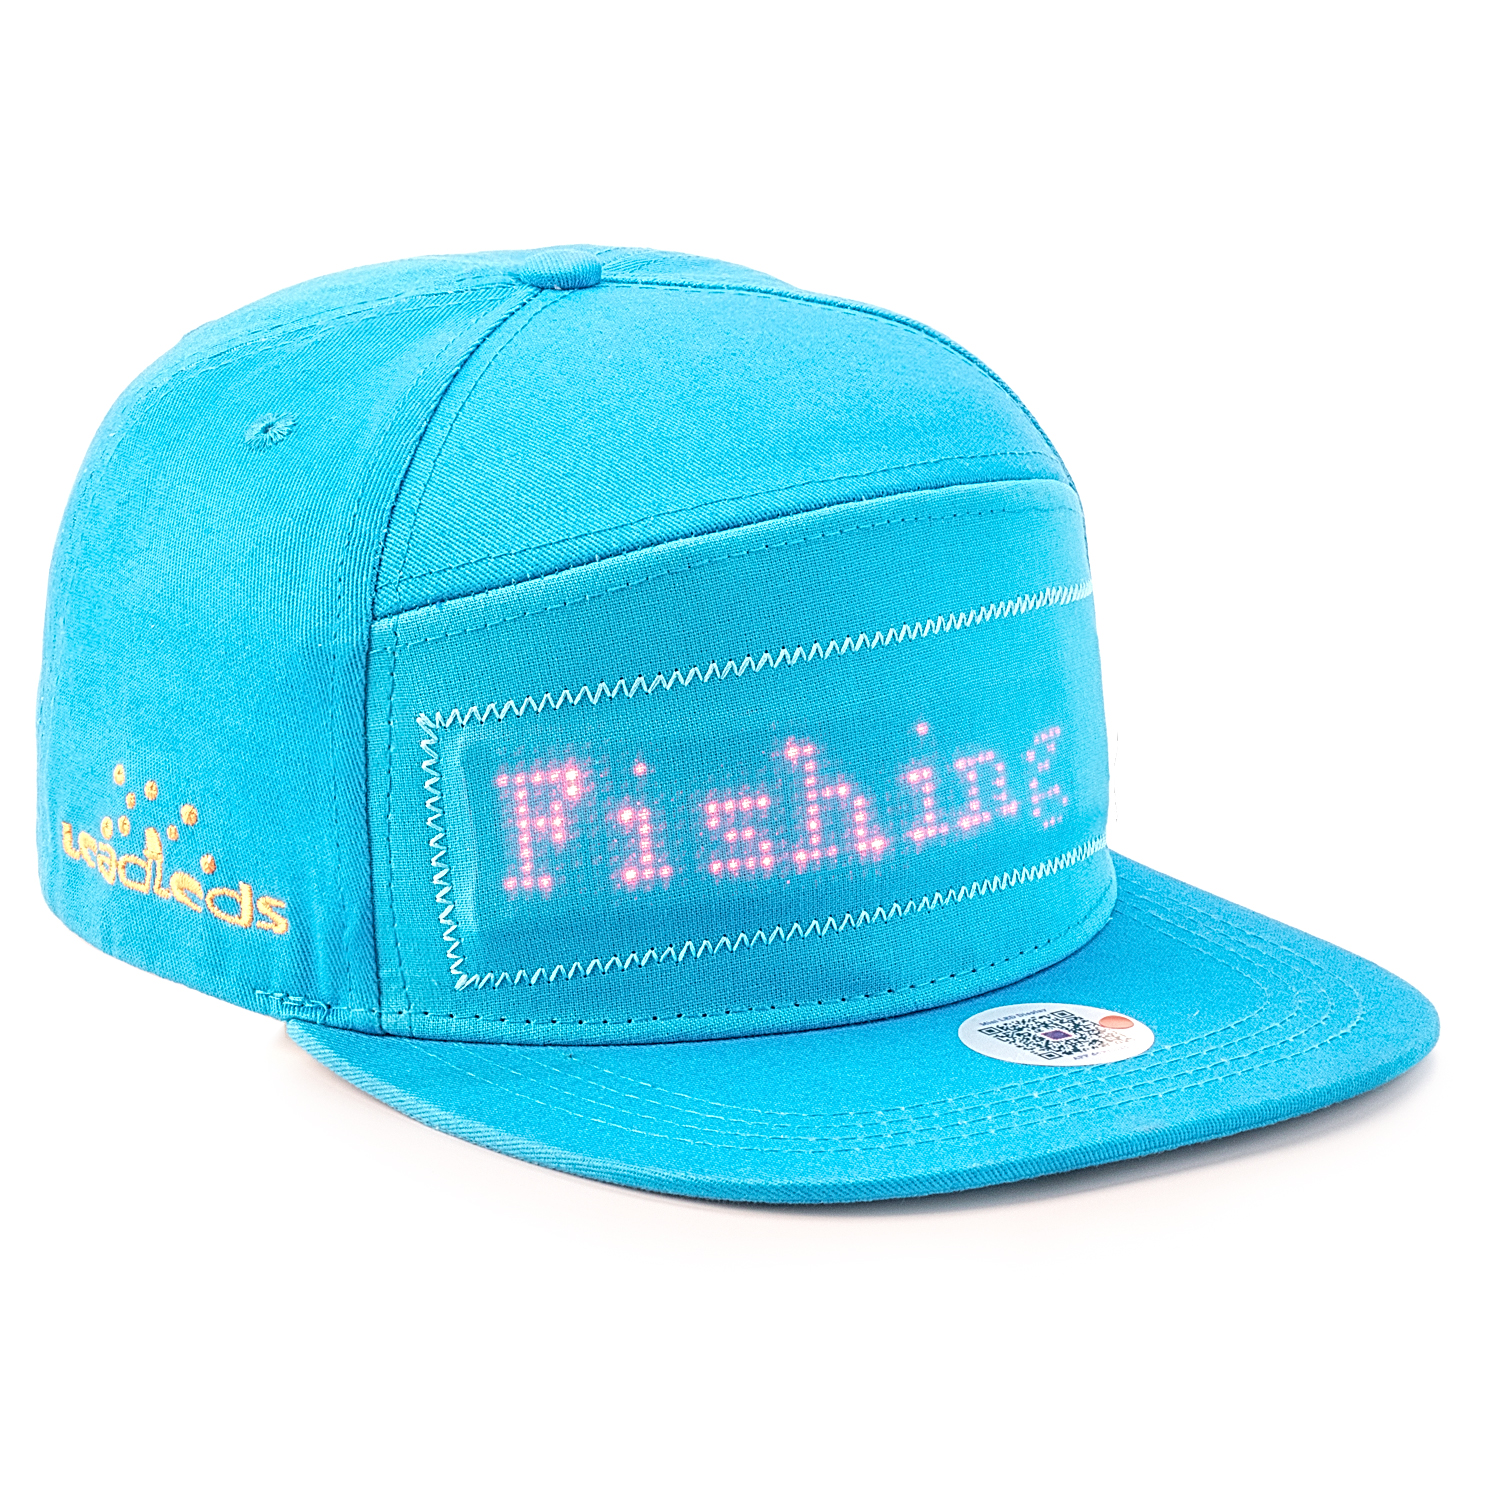 Bluetooth LED Hat Battery Powered Programmable Scrolling Message Display Board Baseball Cap Hip Hop Hip-hop Party Parade Fishing